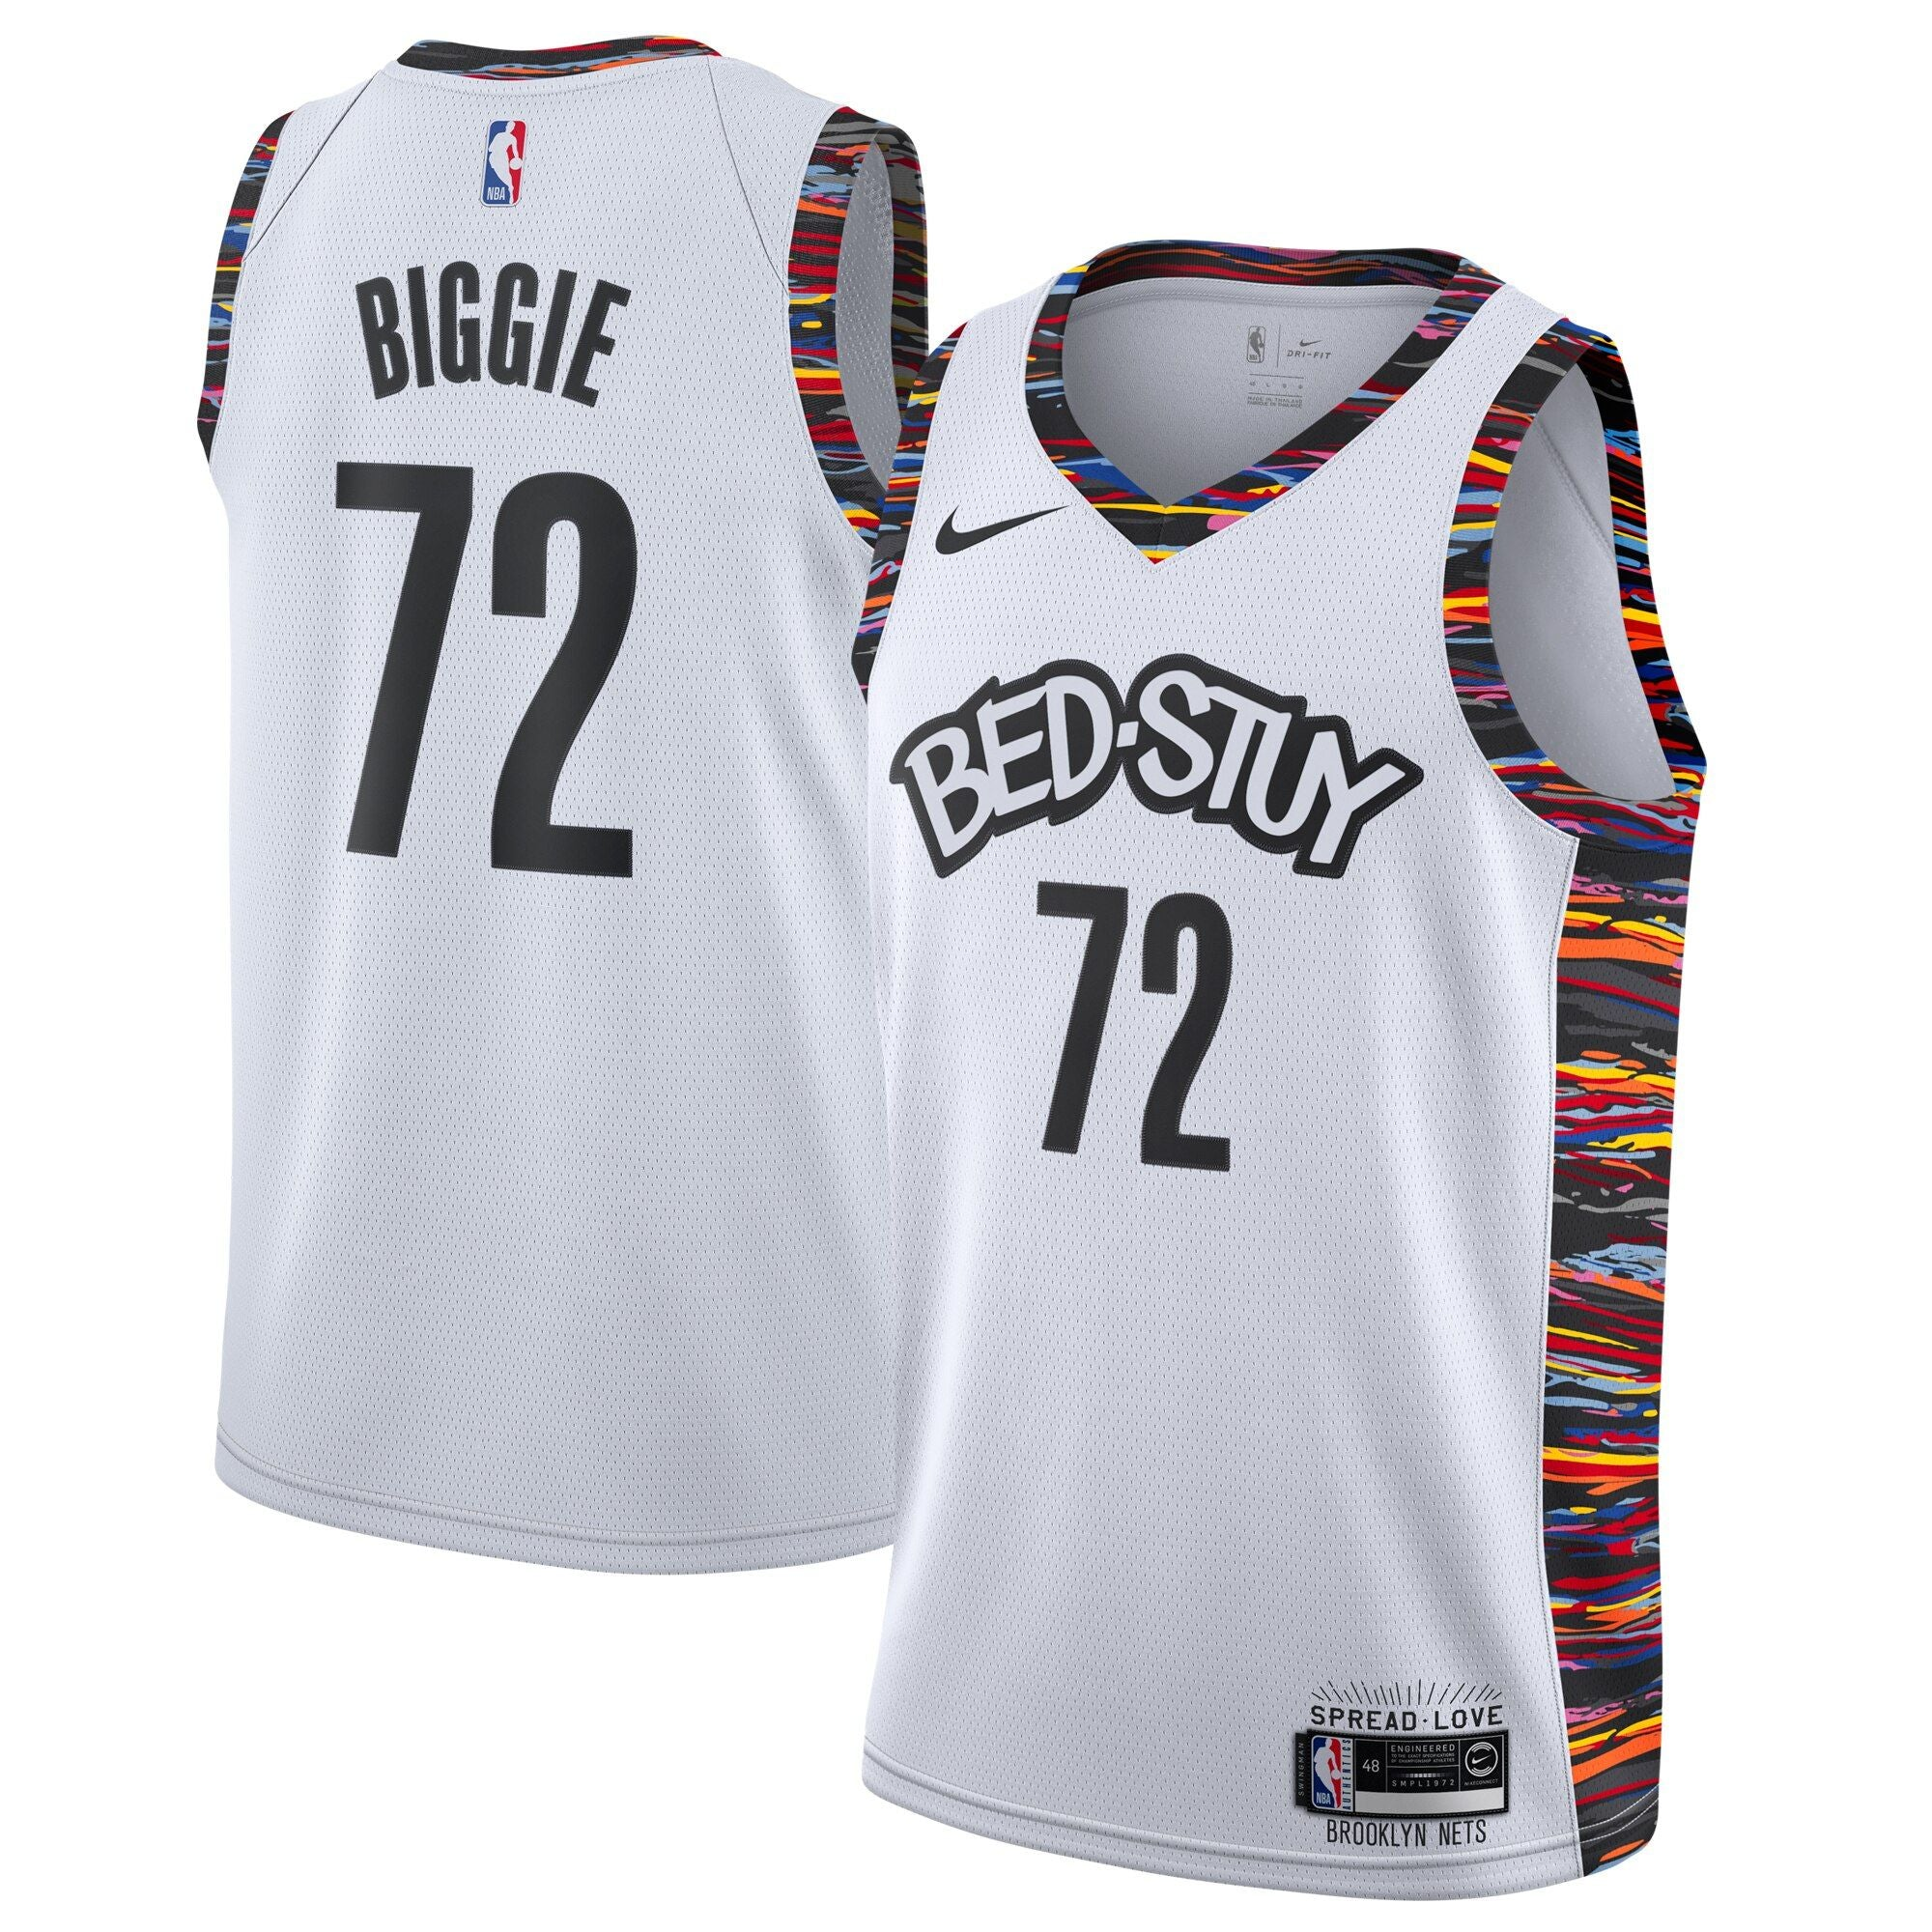 City Edition Biggie #72 Music Collection Jersey - NetsStore.com